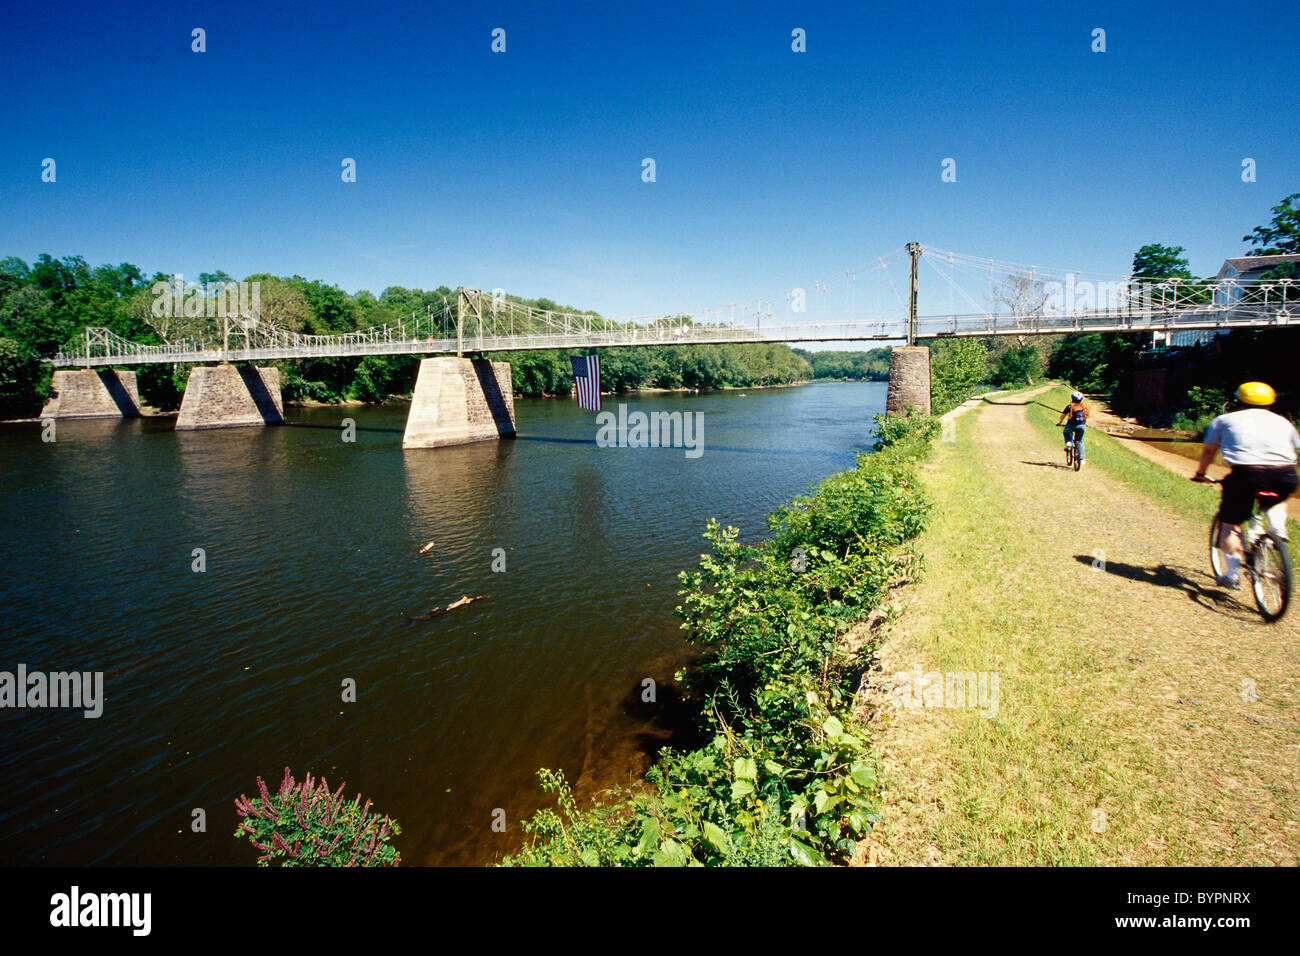 People Bicycling on the Towpath at the Lumberville-Raven Rock Bridge, Pennsylvania - Stock Image